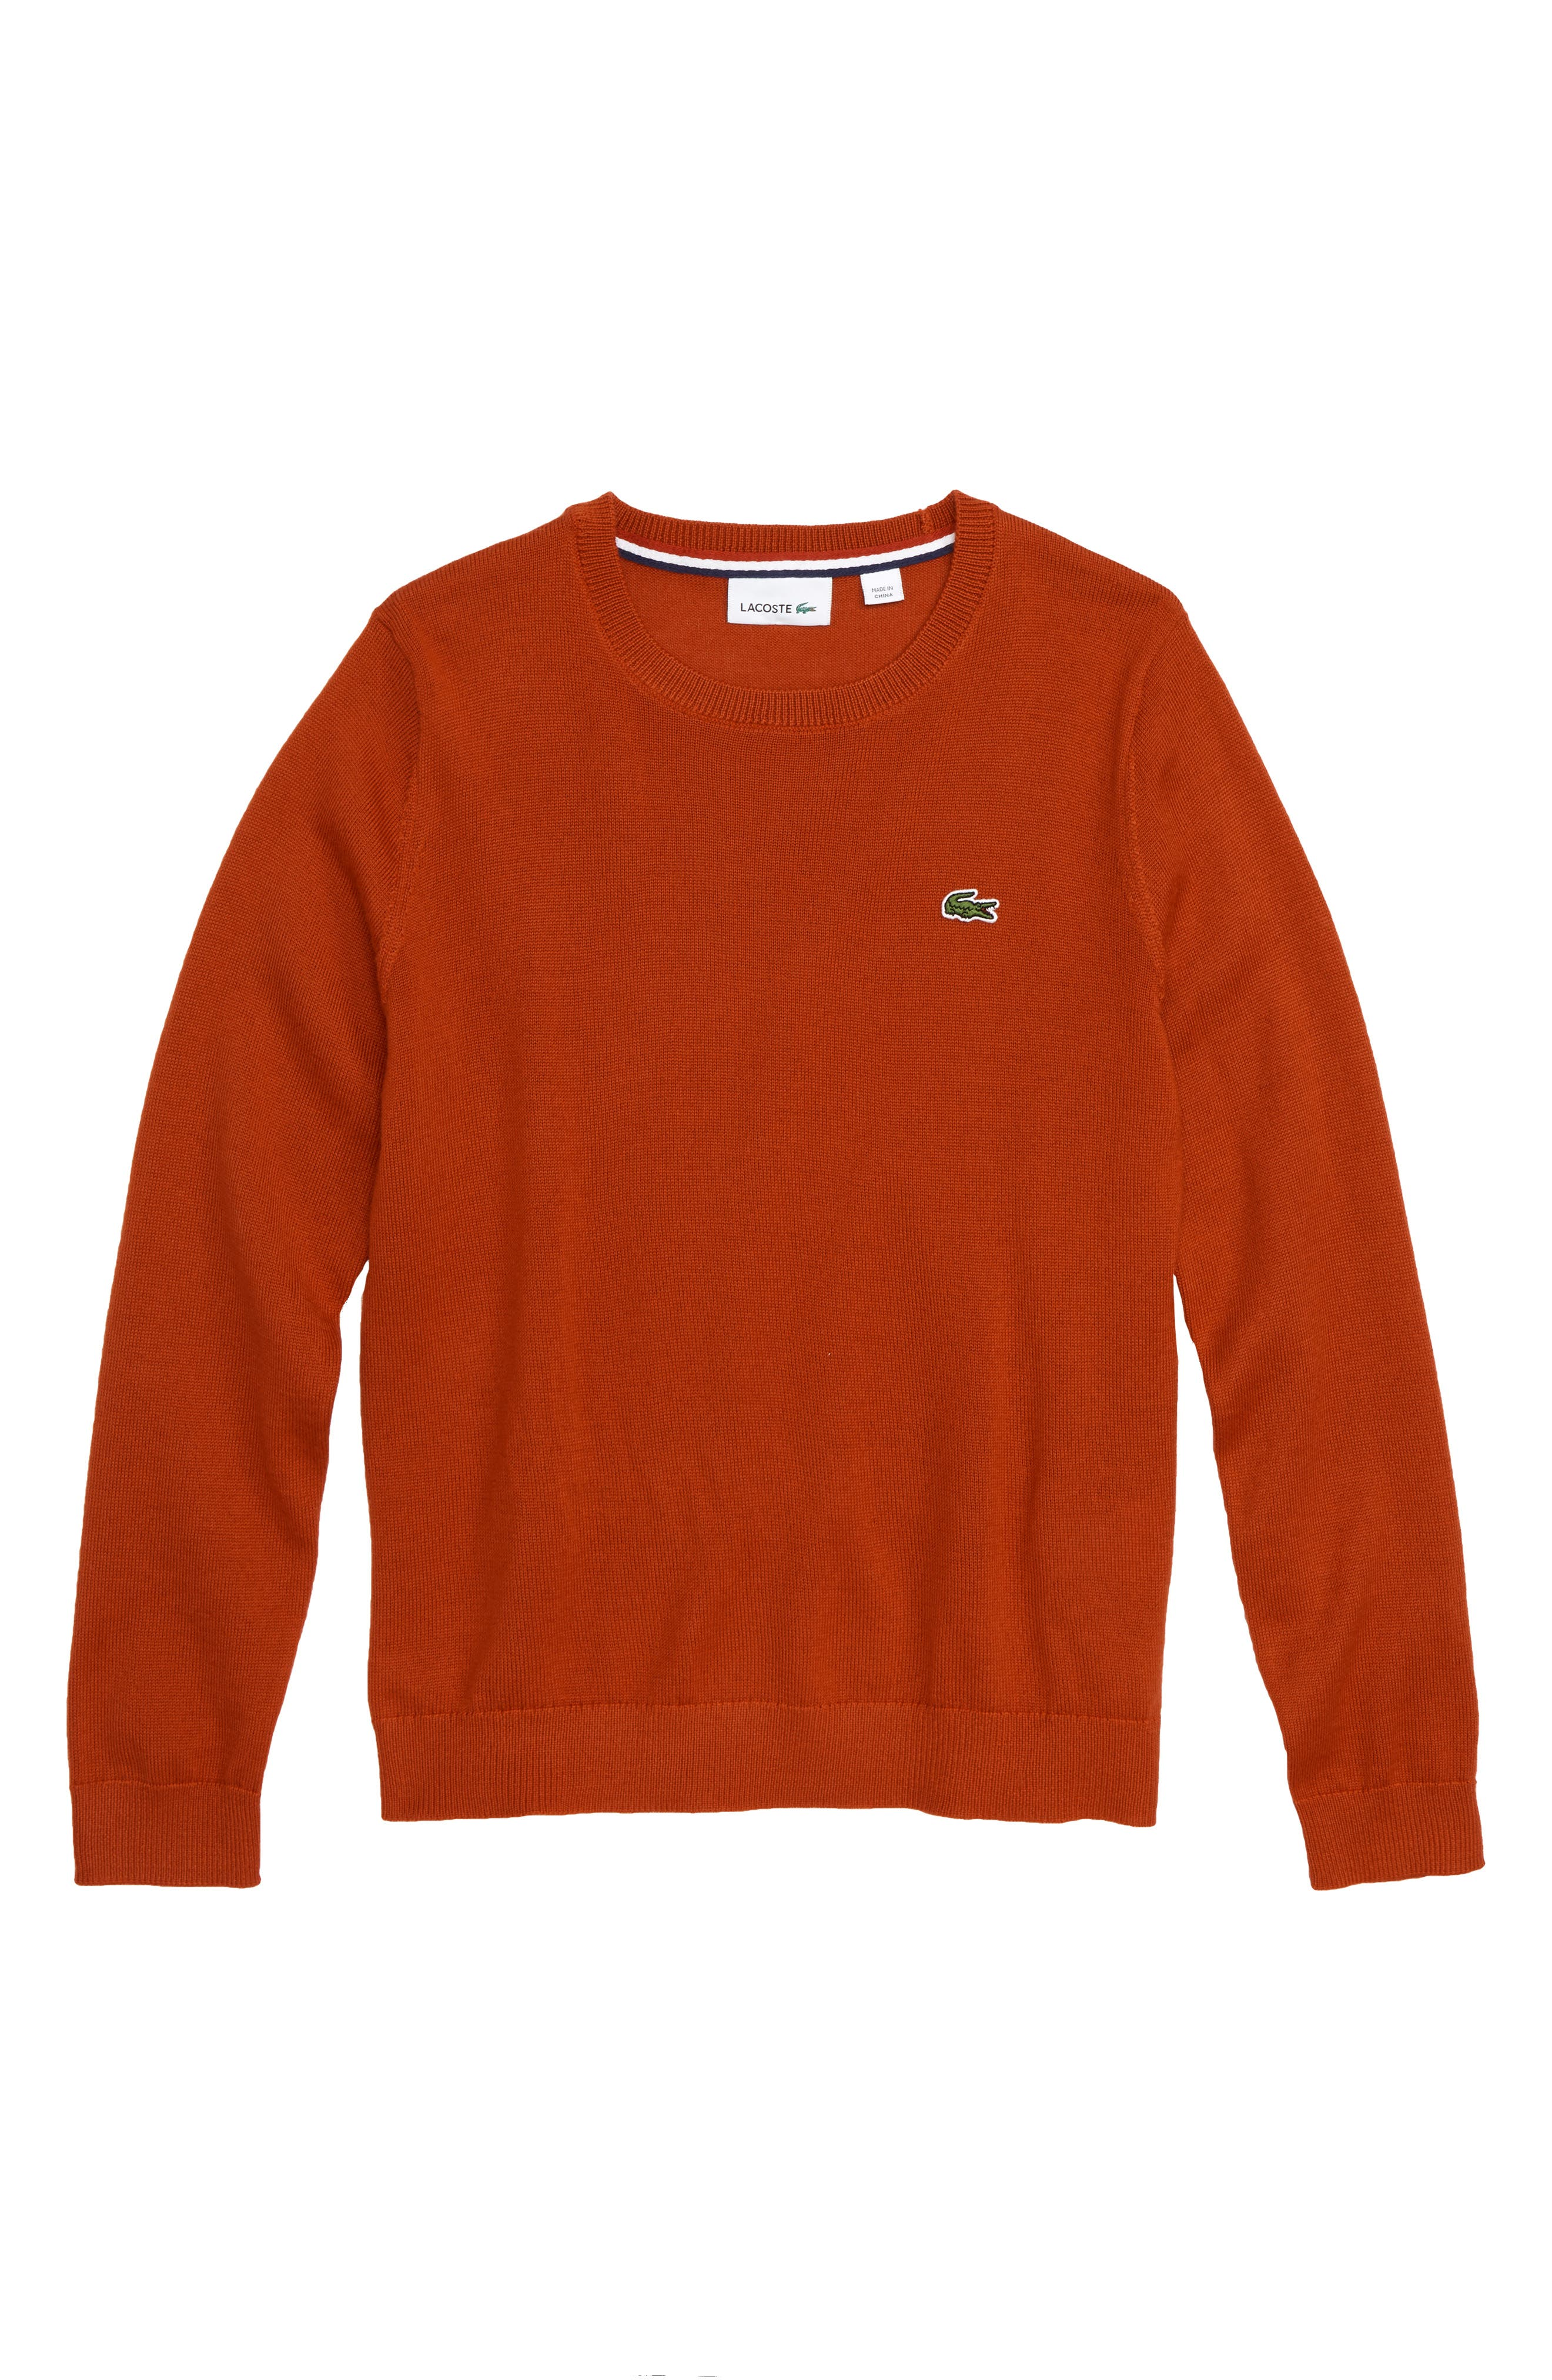 Crewneck Sweater,                             Main thumbnail 1, color,                             LIGHTHOUSE RED